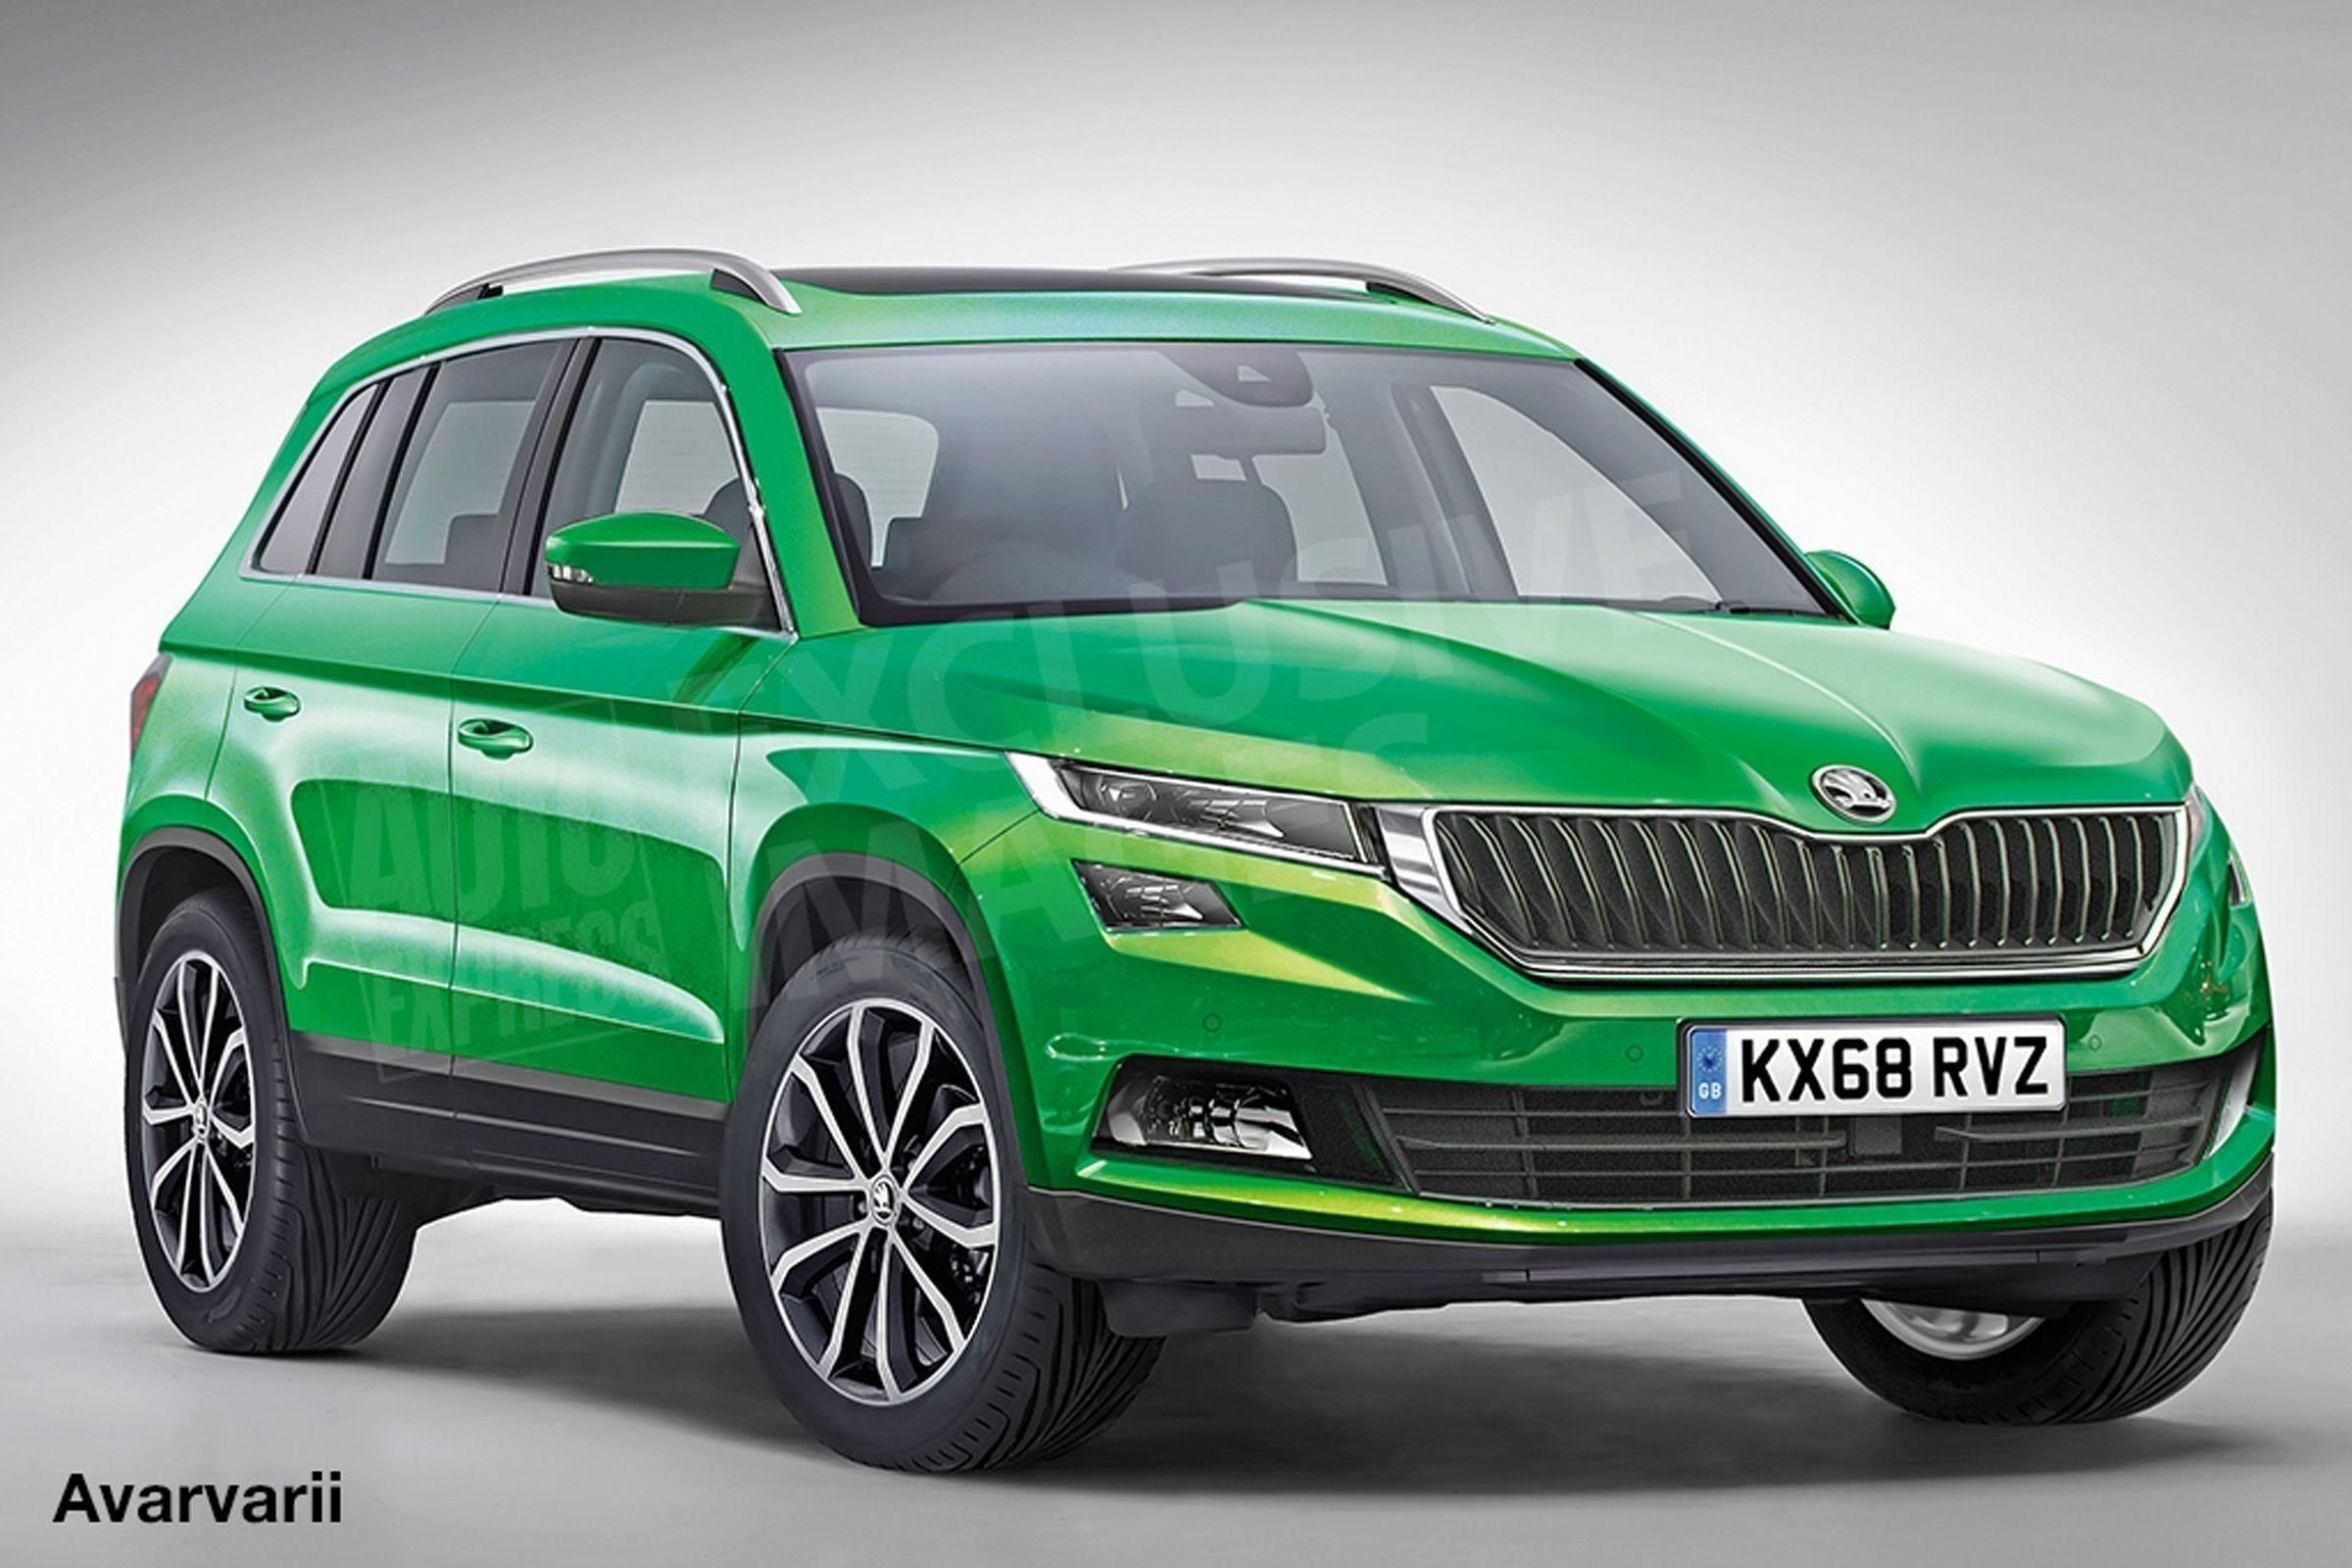 2020 skoda snowman full preview specs and review  Škoda